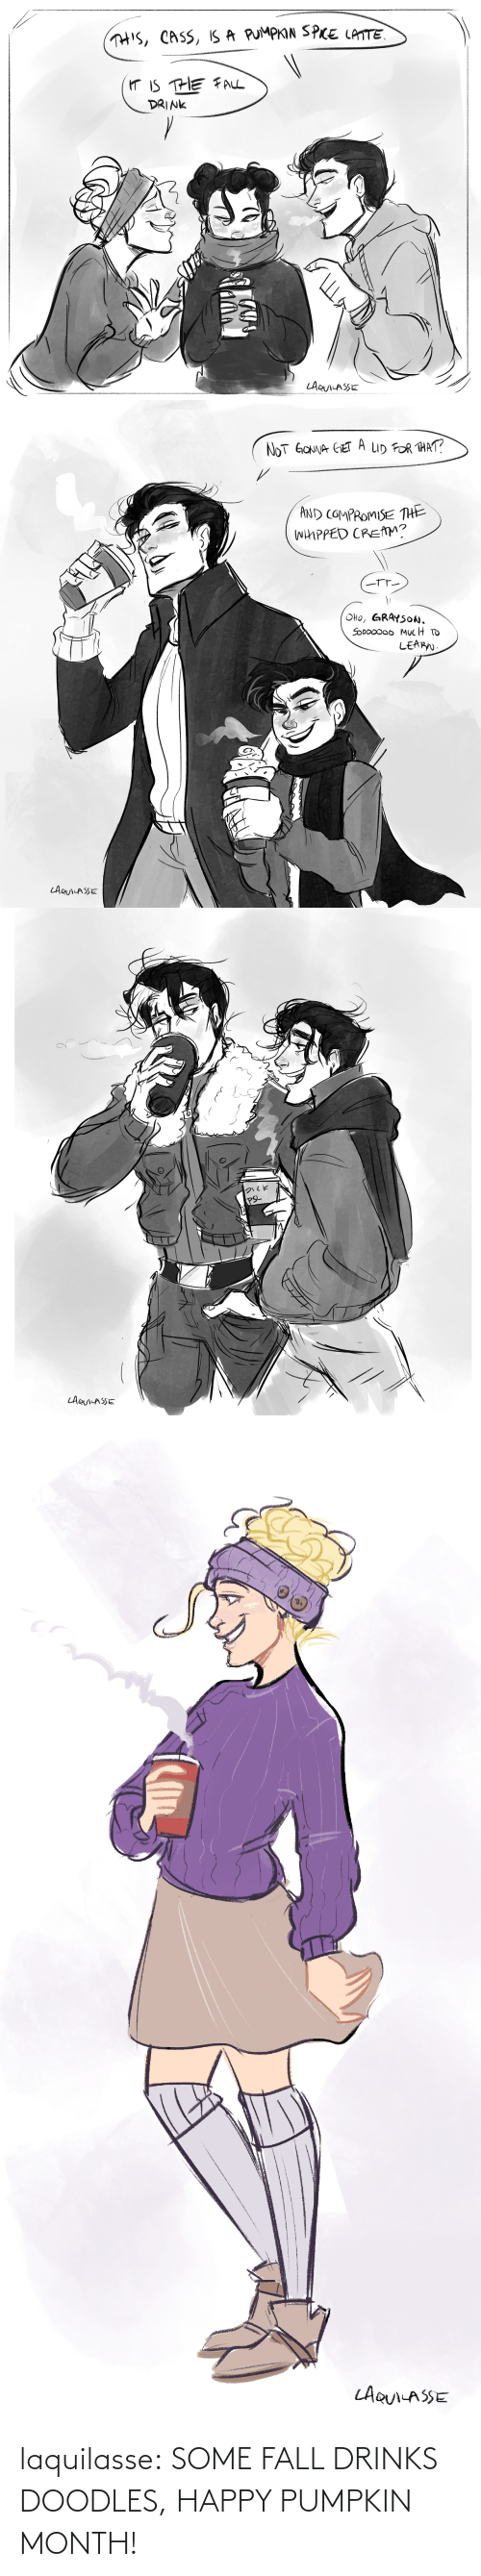 Fall: laquilasse:  SOME FALL DRINKS DOODLES, HAPPY PUMPKIN MONTH!